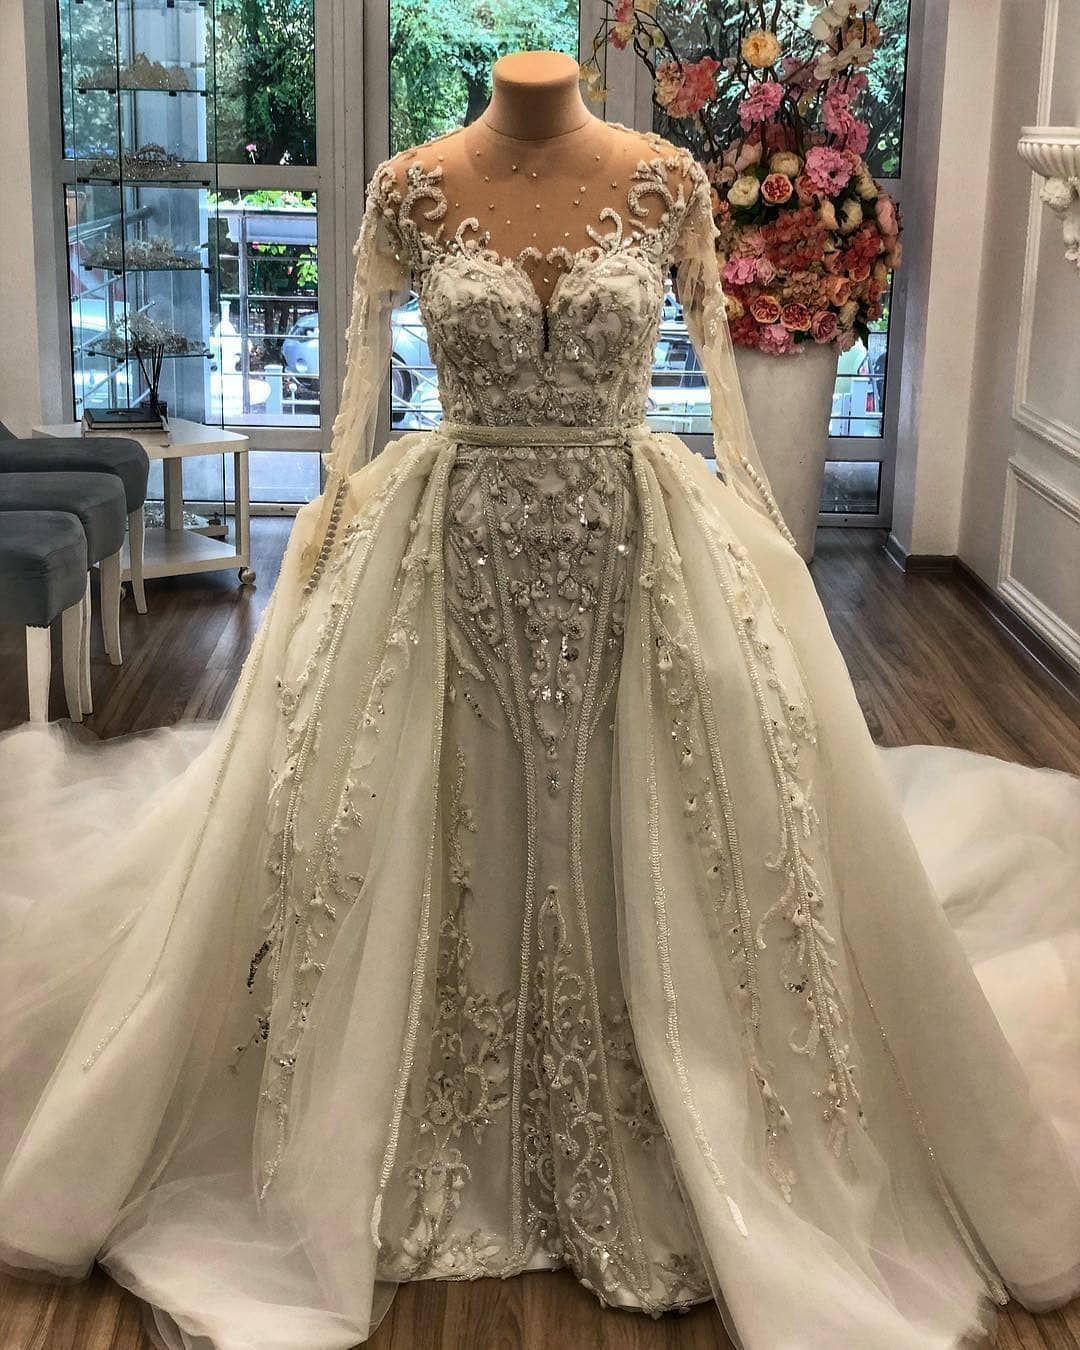 7f4460bbf2cf This beaded long sleeve wedding dress has a nice overskirt. The illusion  neckline adds to